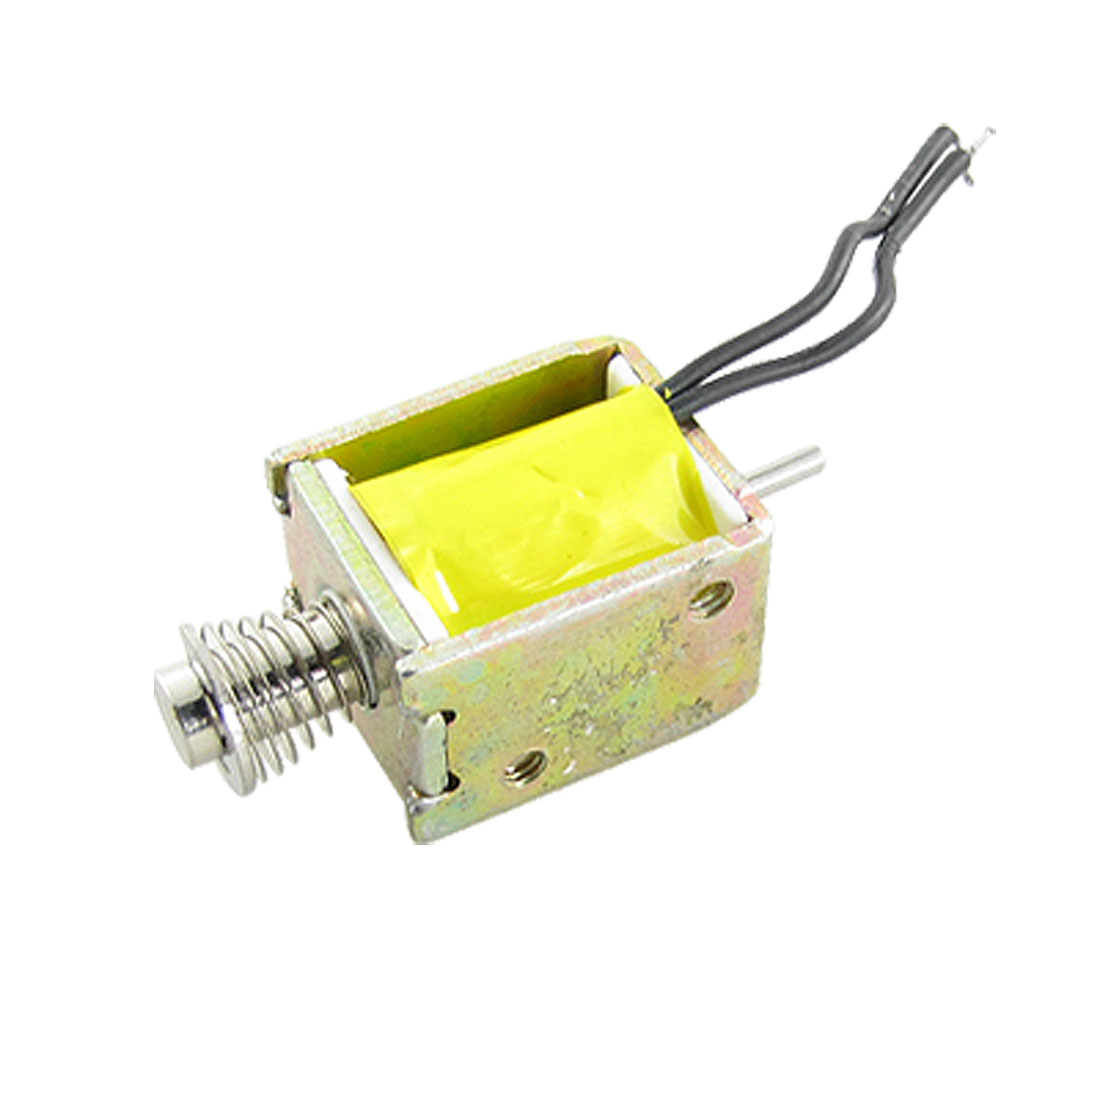 DC 12V 0.2A Push Type Open Frame Actuator Electric Solenoid